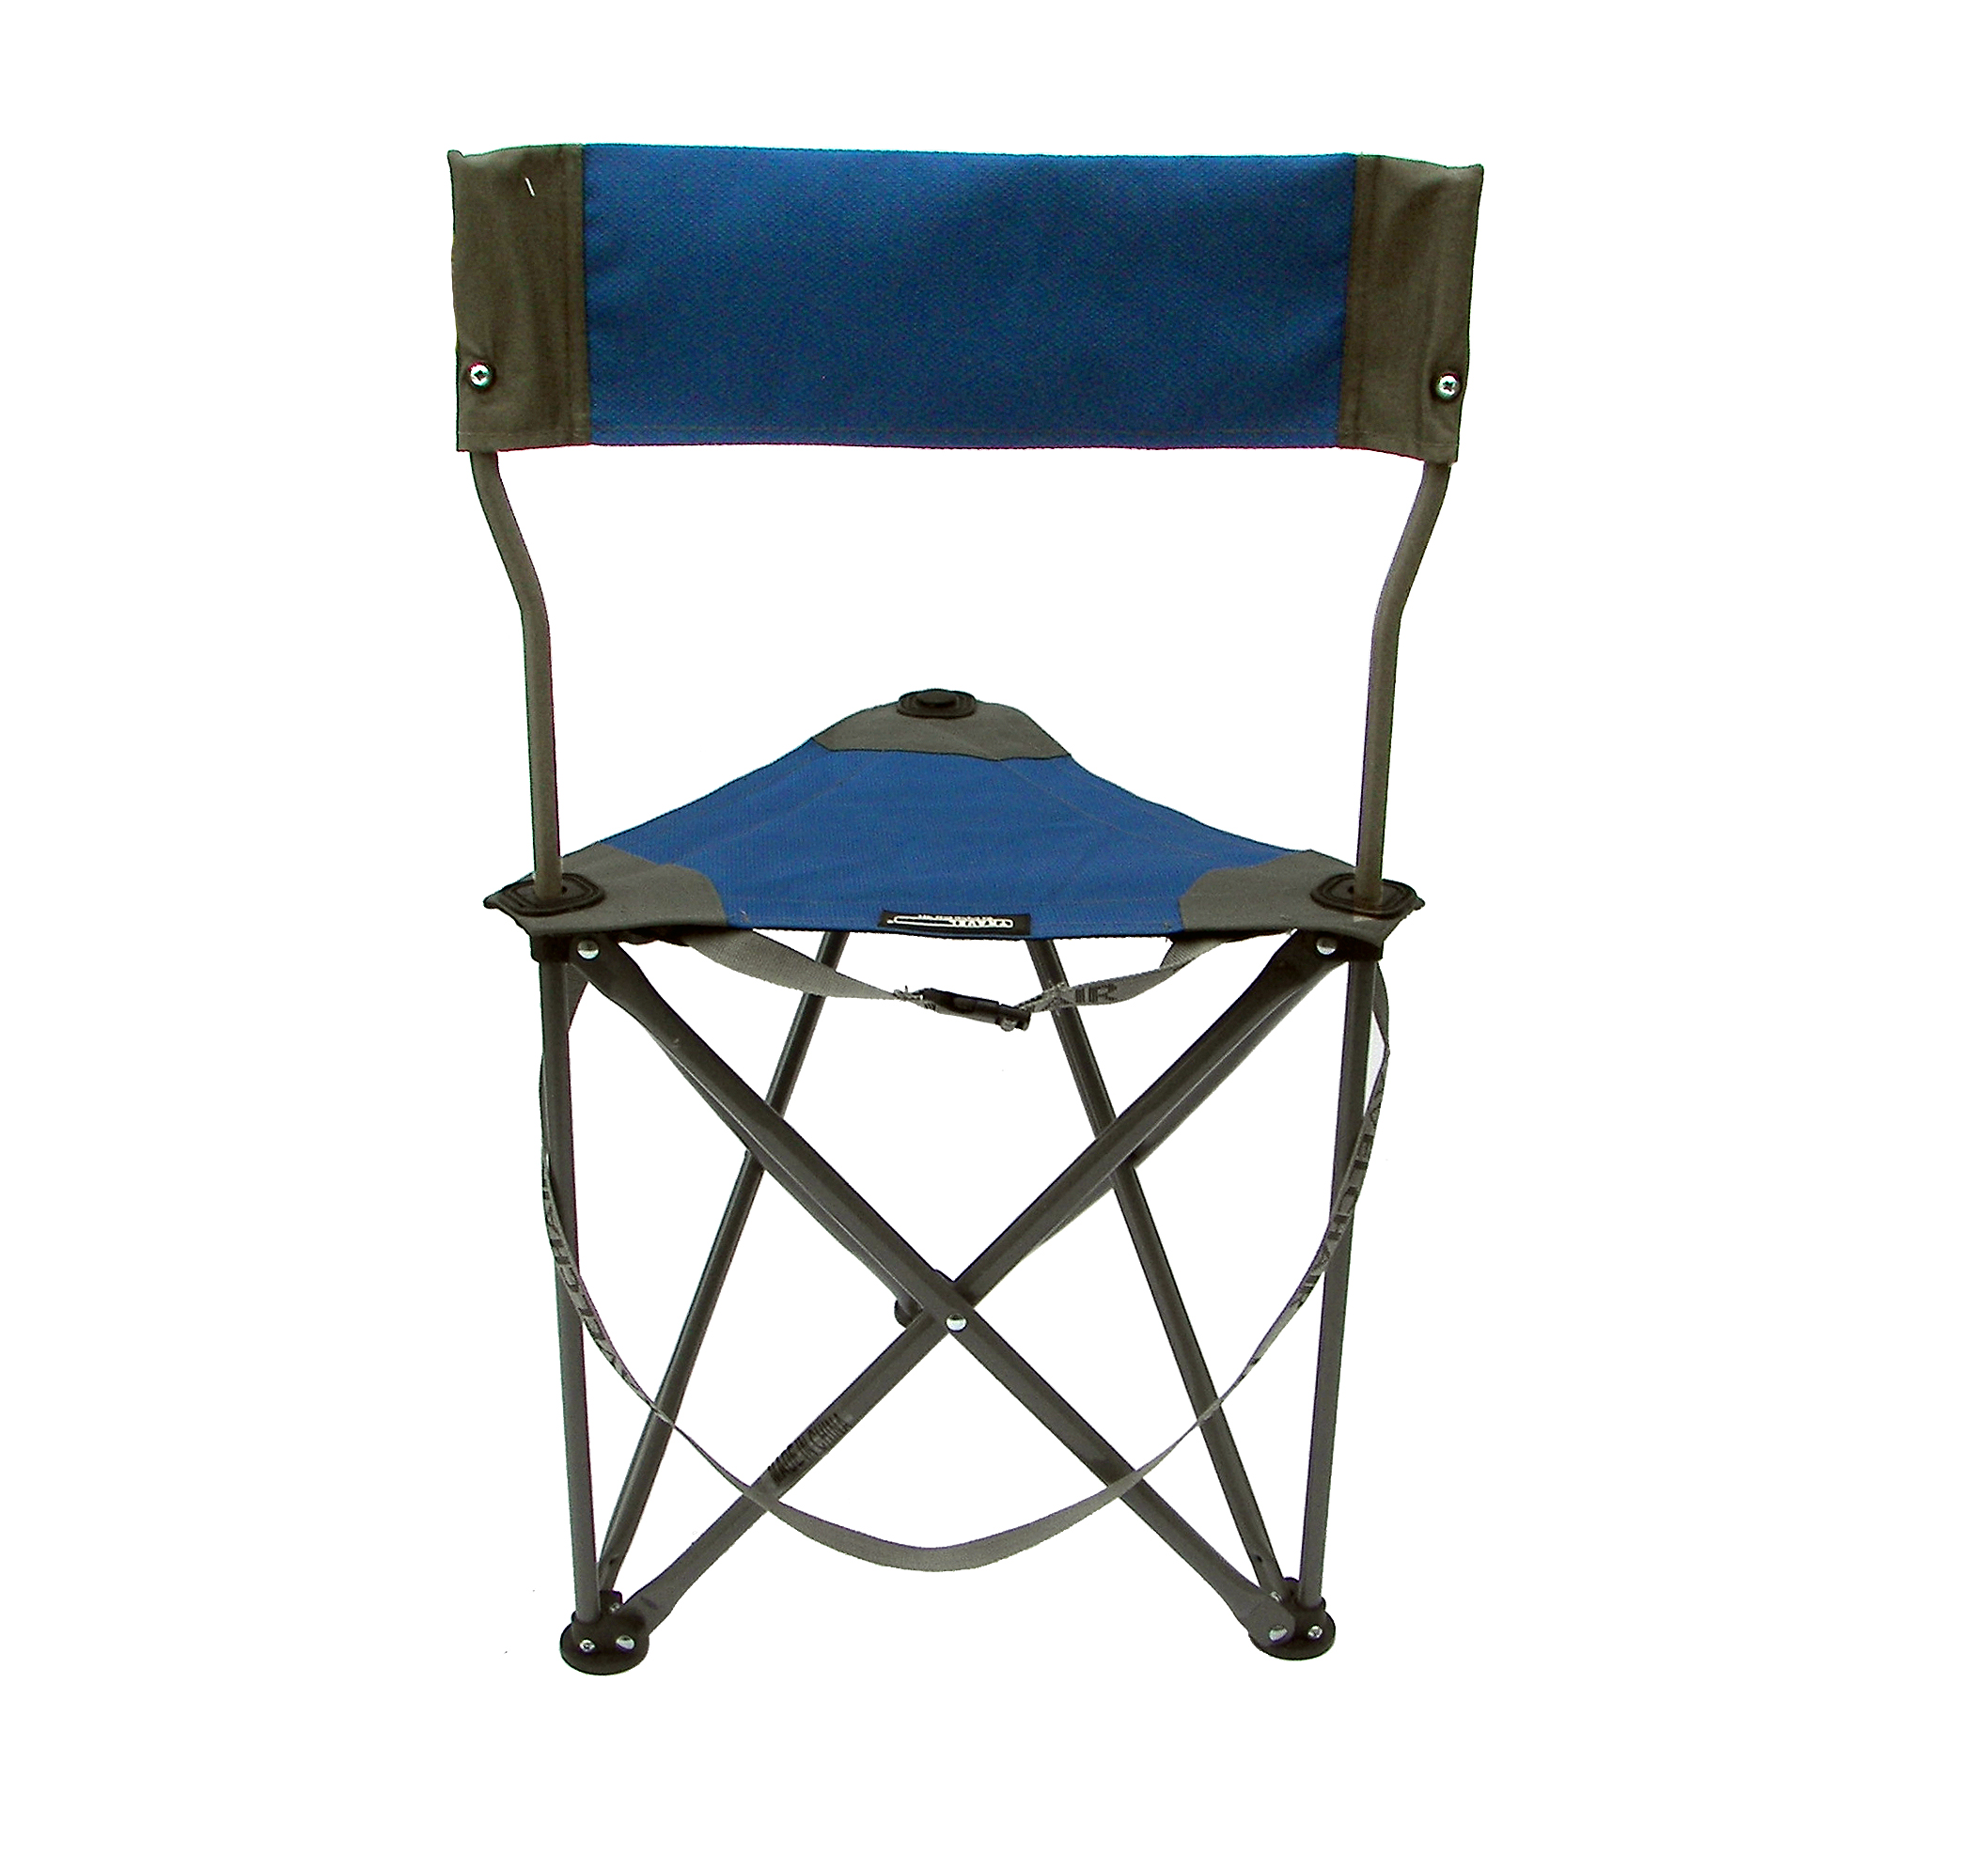 travel chair big bubba covers for wedding decoration ultimate slacker 2 folding blue